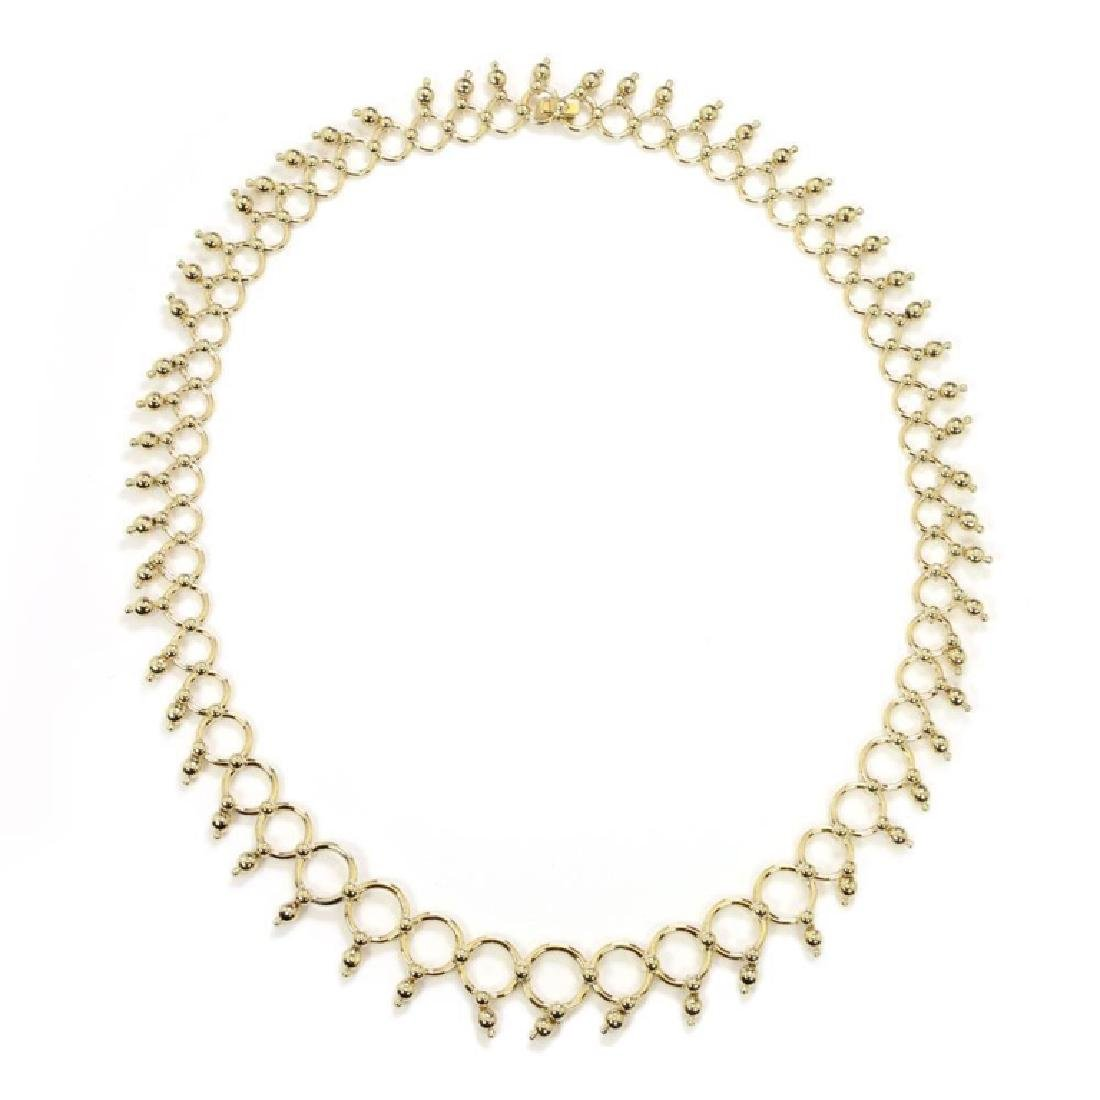 Tiffany & Co. 18k Gold Circle Bead Link Necklace - 2